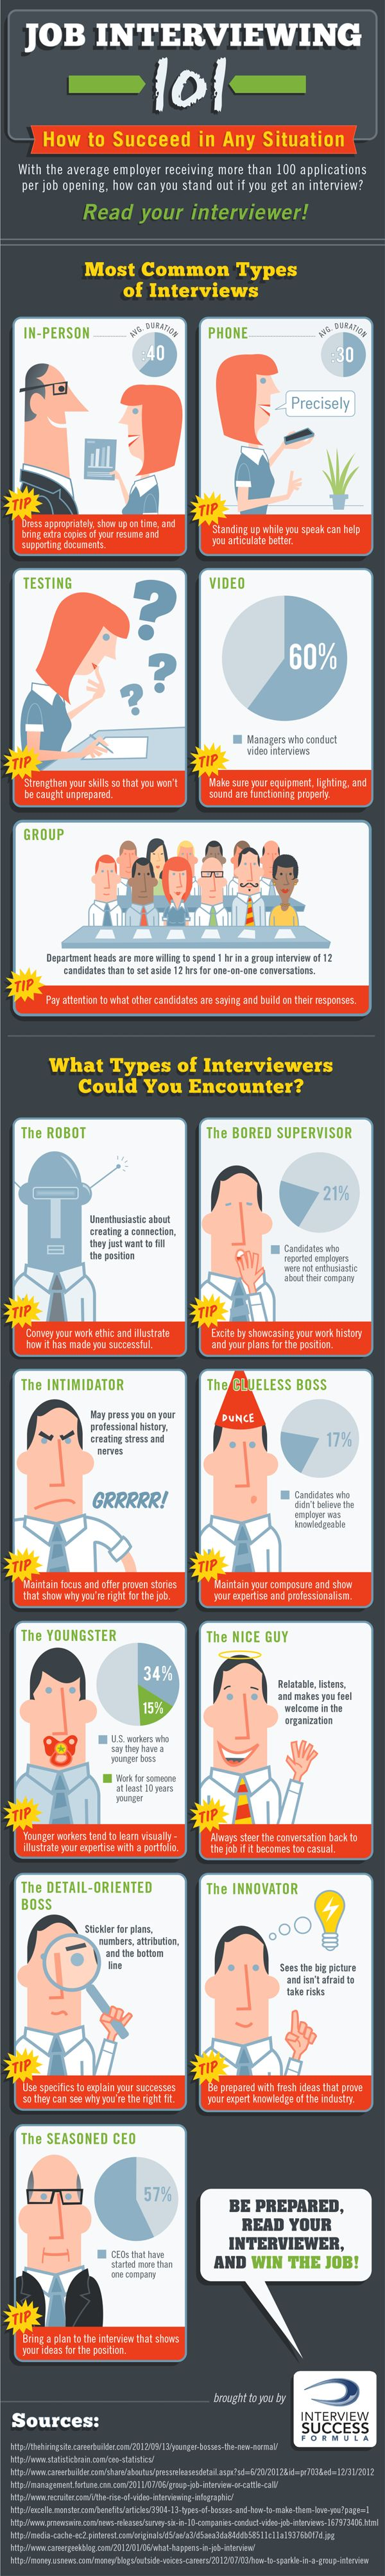 images about job interview always remember job interviewing this infographic outlines the different types of interviews and the various versions of interviewers that come a long them